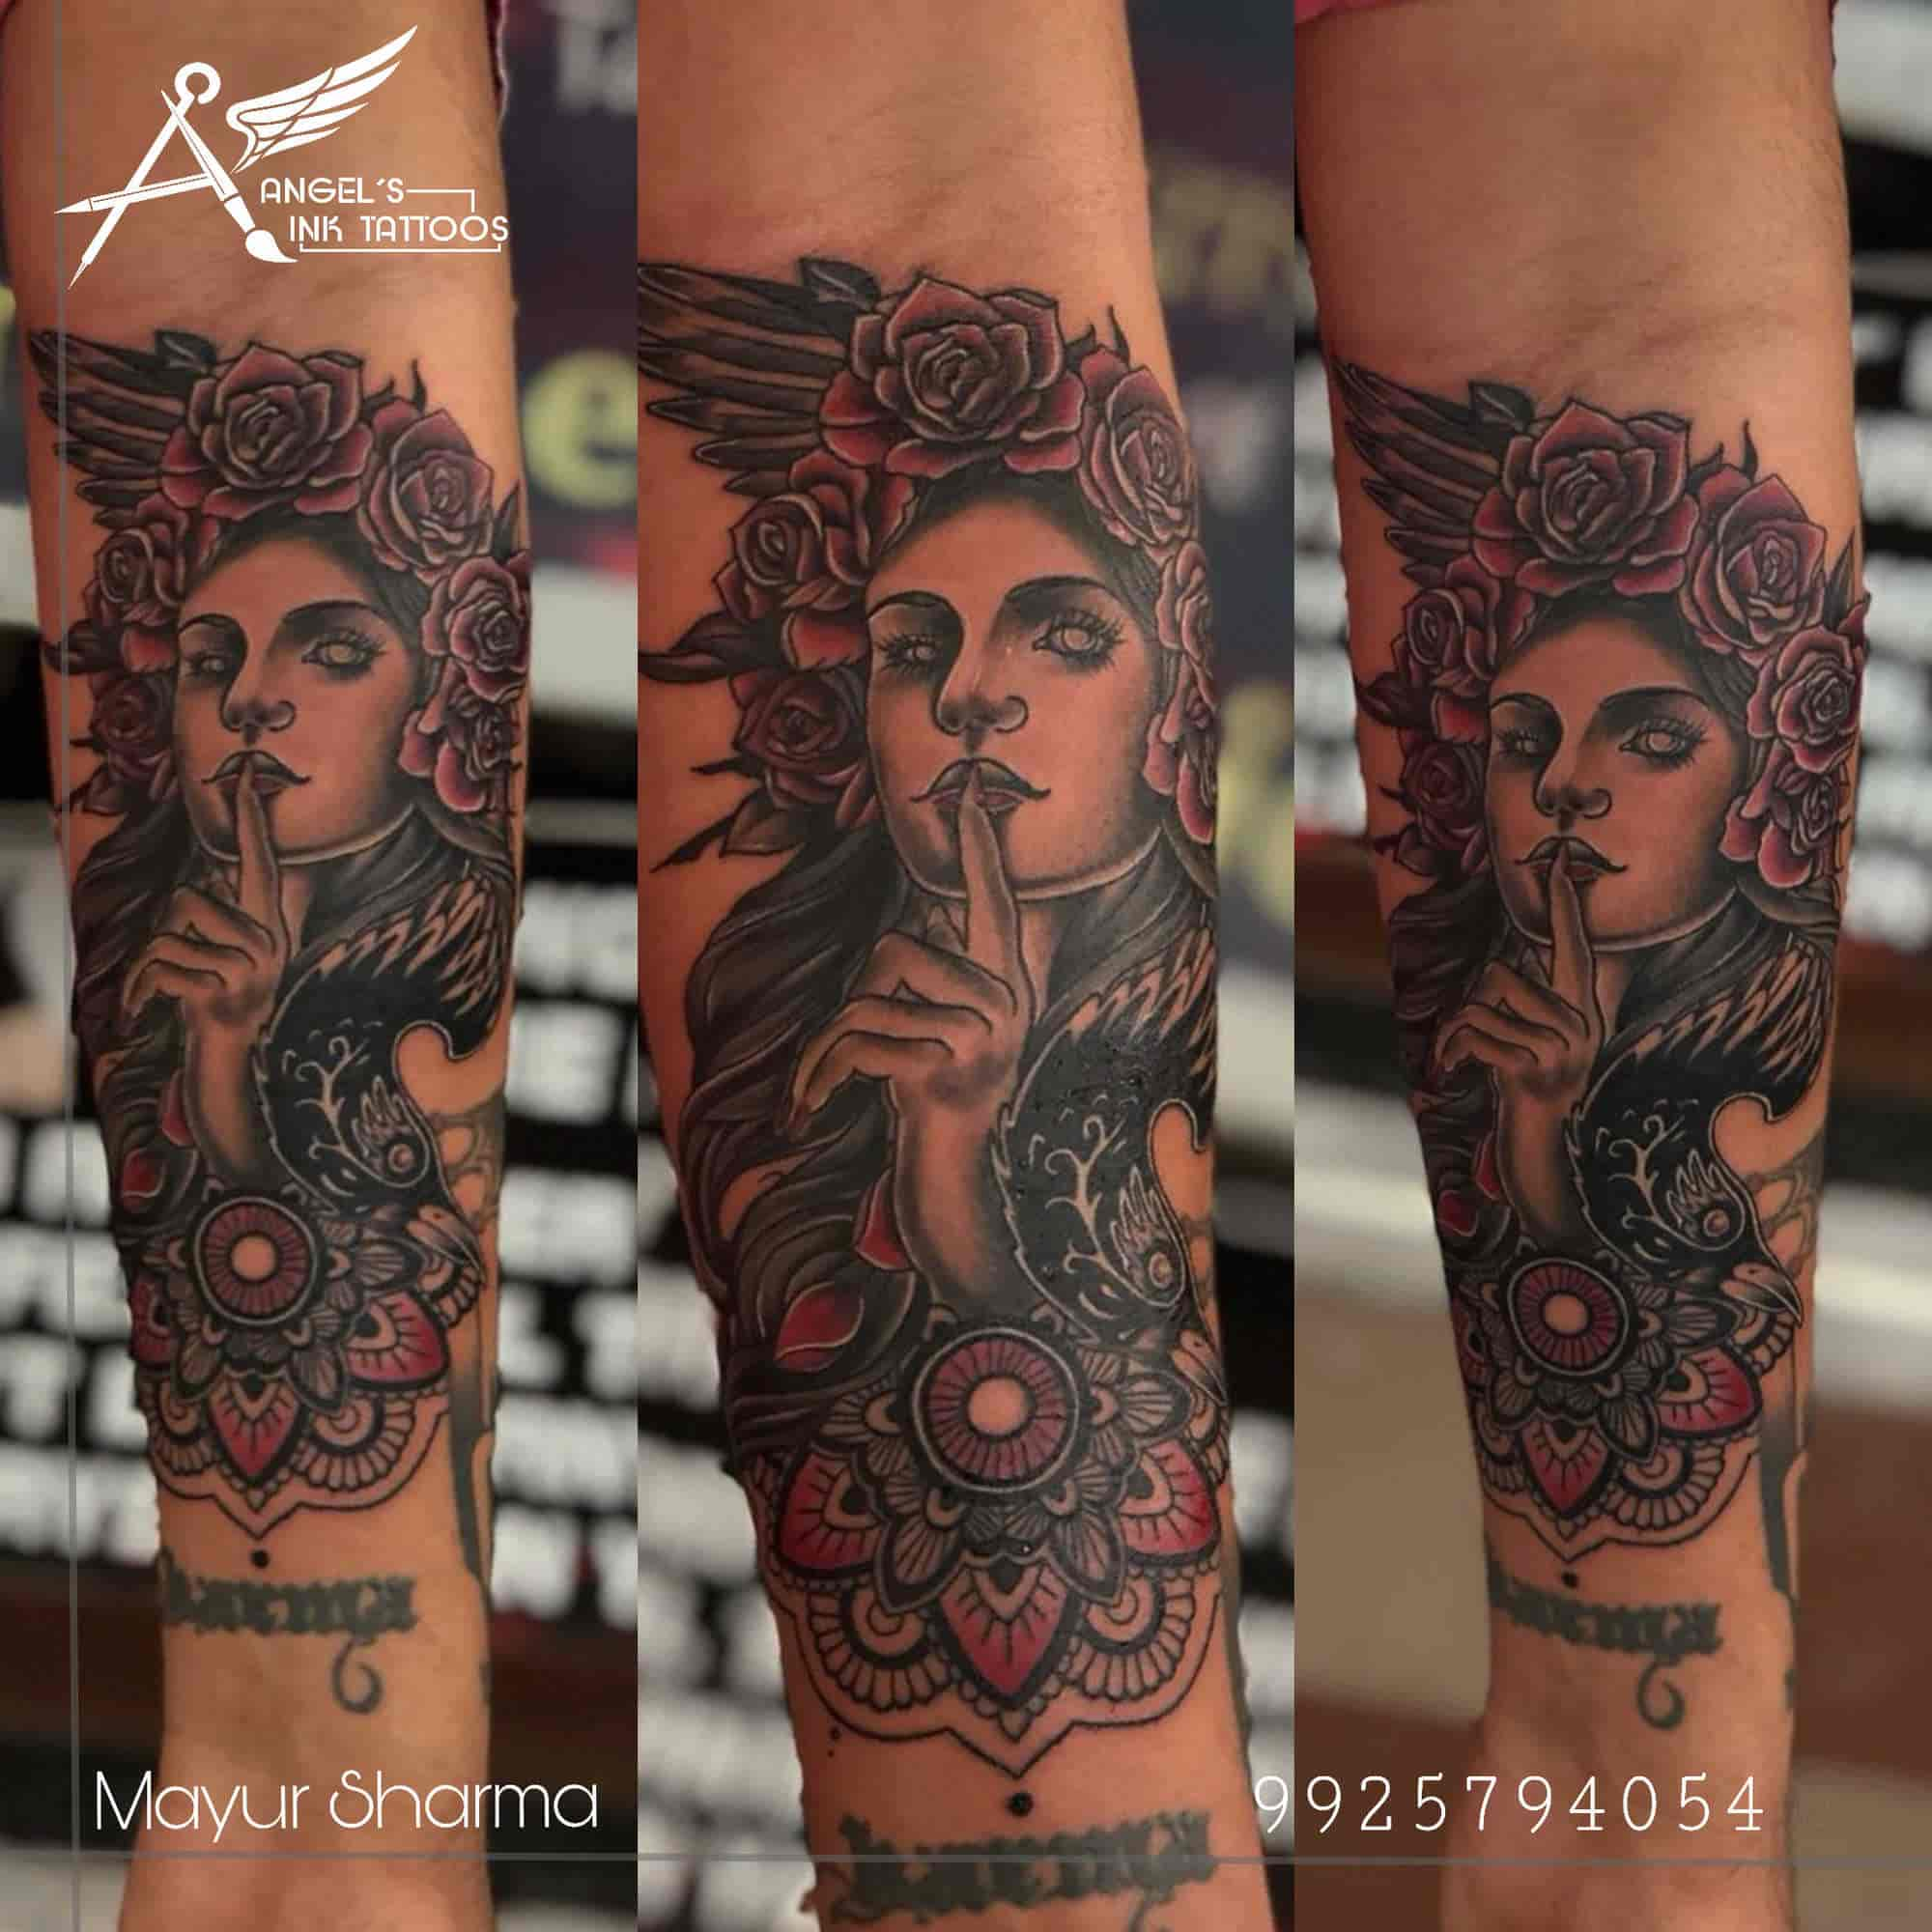 67d281a7f09cb Tattoo Design - Angel's Ink Tattoos & Piercings Photos, Adajan Dn, Surat -  Tattoo ...